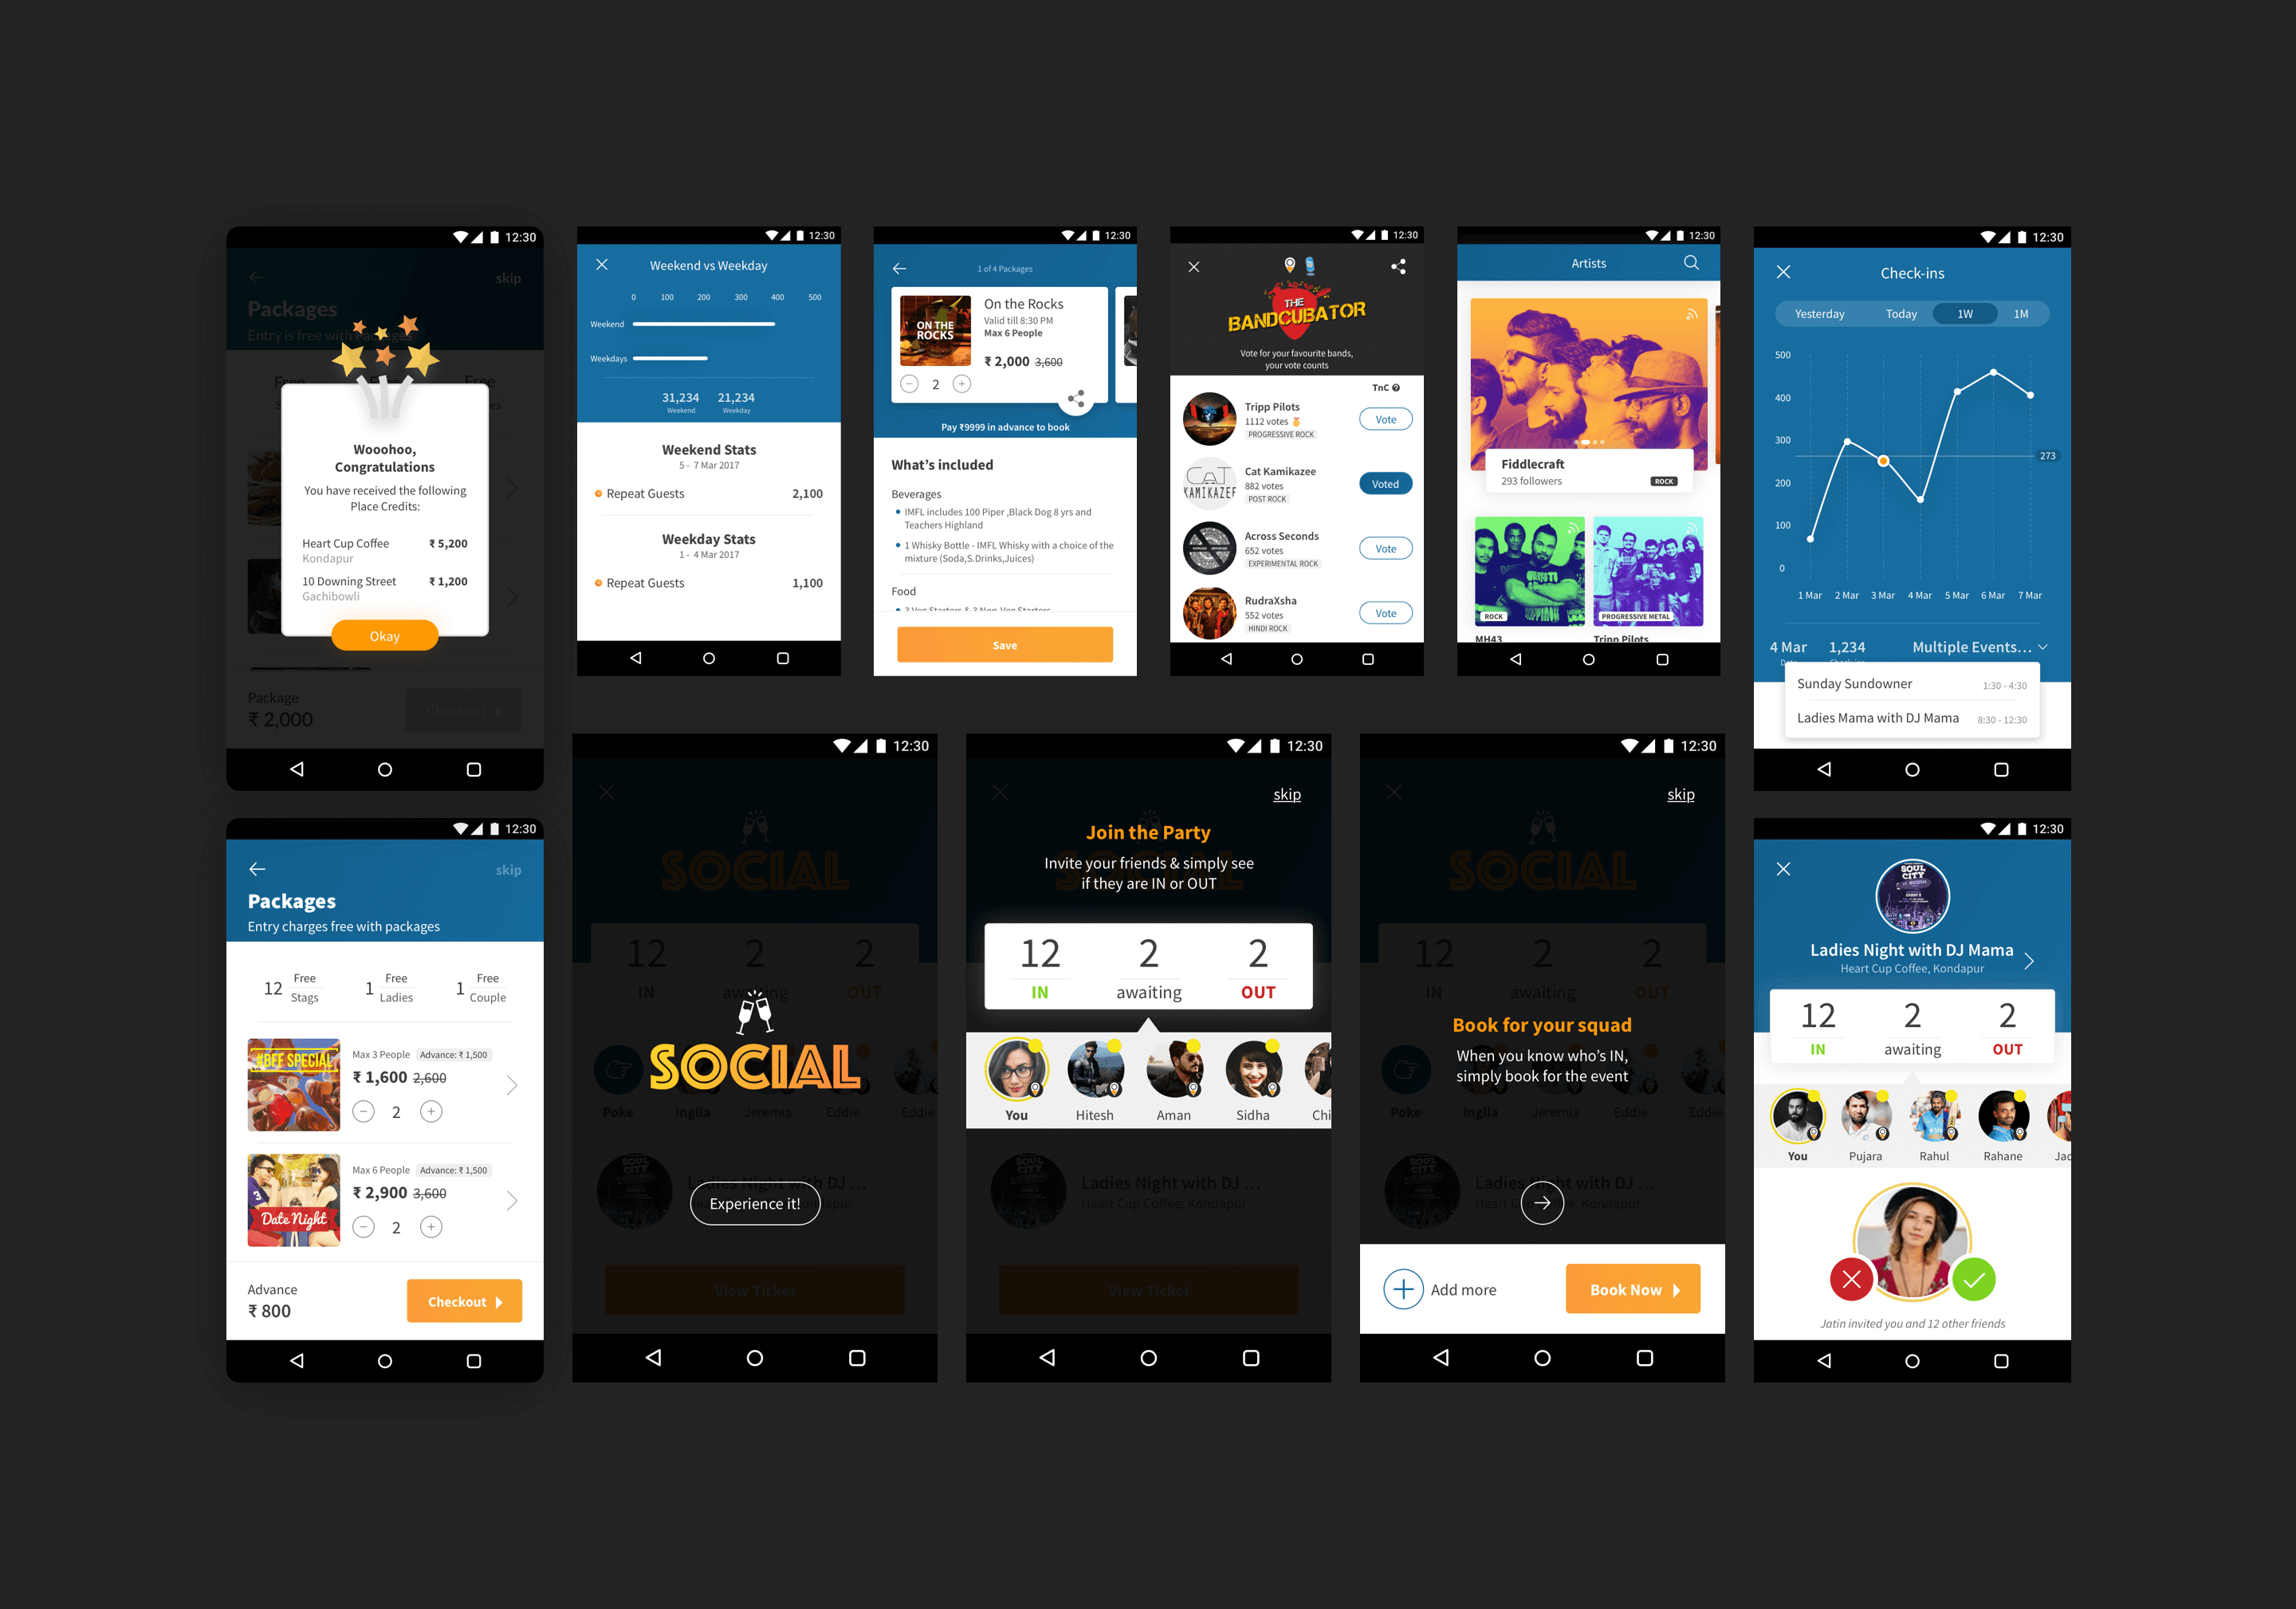 Brisky is a recommendation platform that connects people with local experts for personalized recommendations. It also provides real-time information about what is happening at pubs around you. Brisky App - User Interface Design